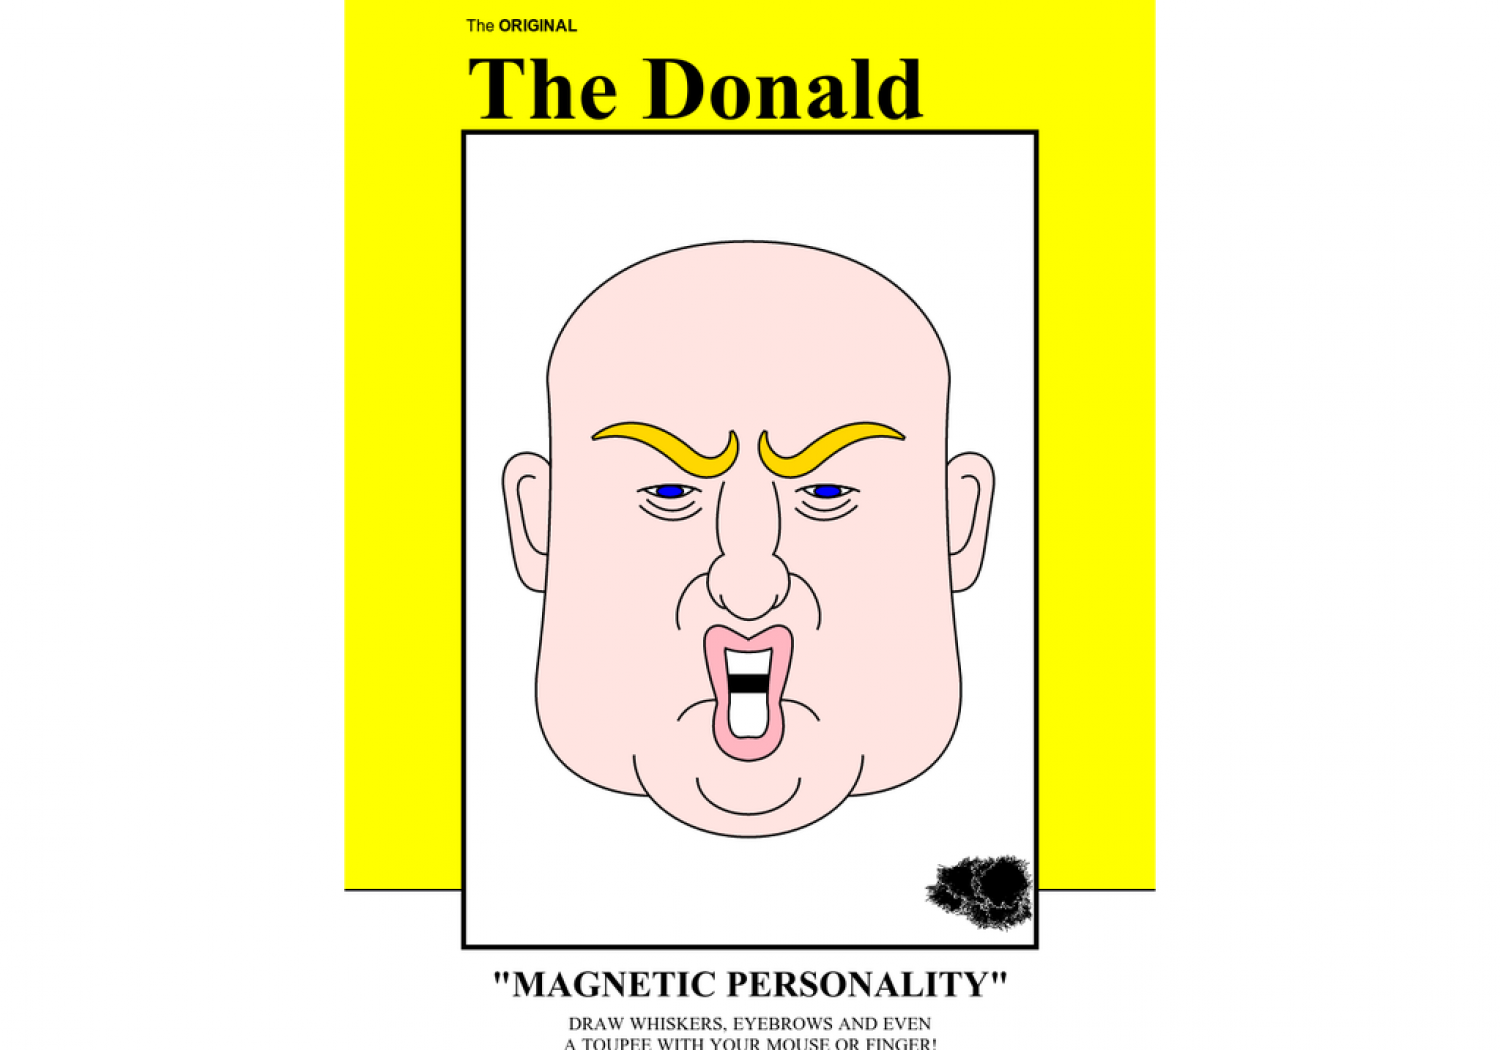 The Donald: A Retro Magnetic Hair Toy Infographic